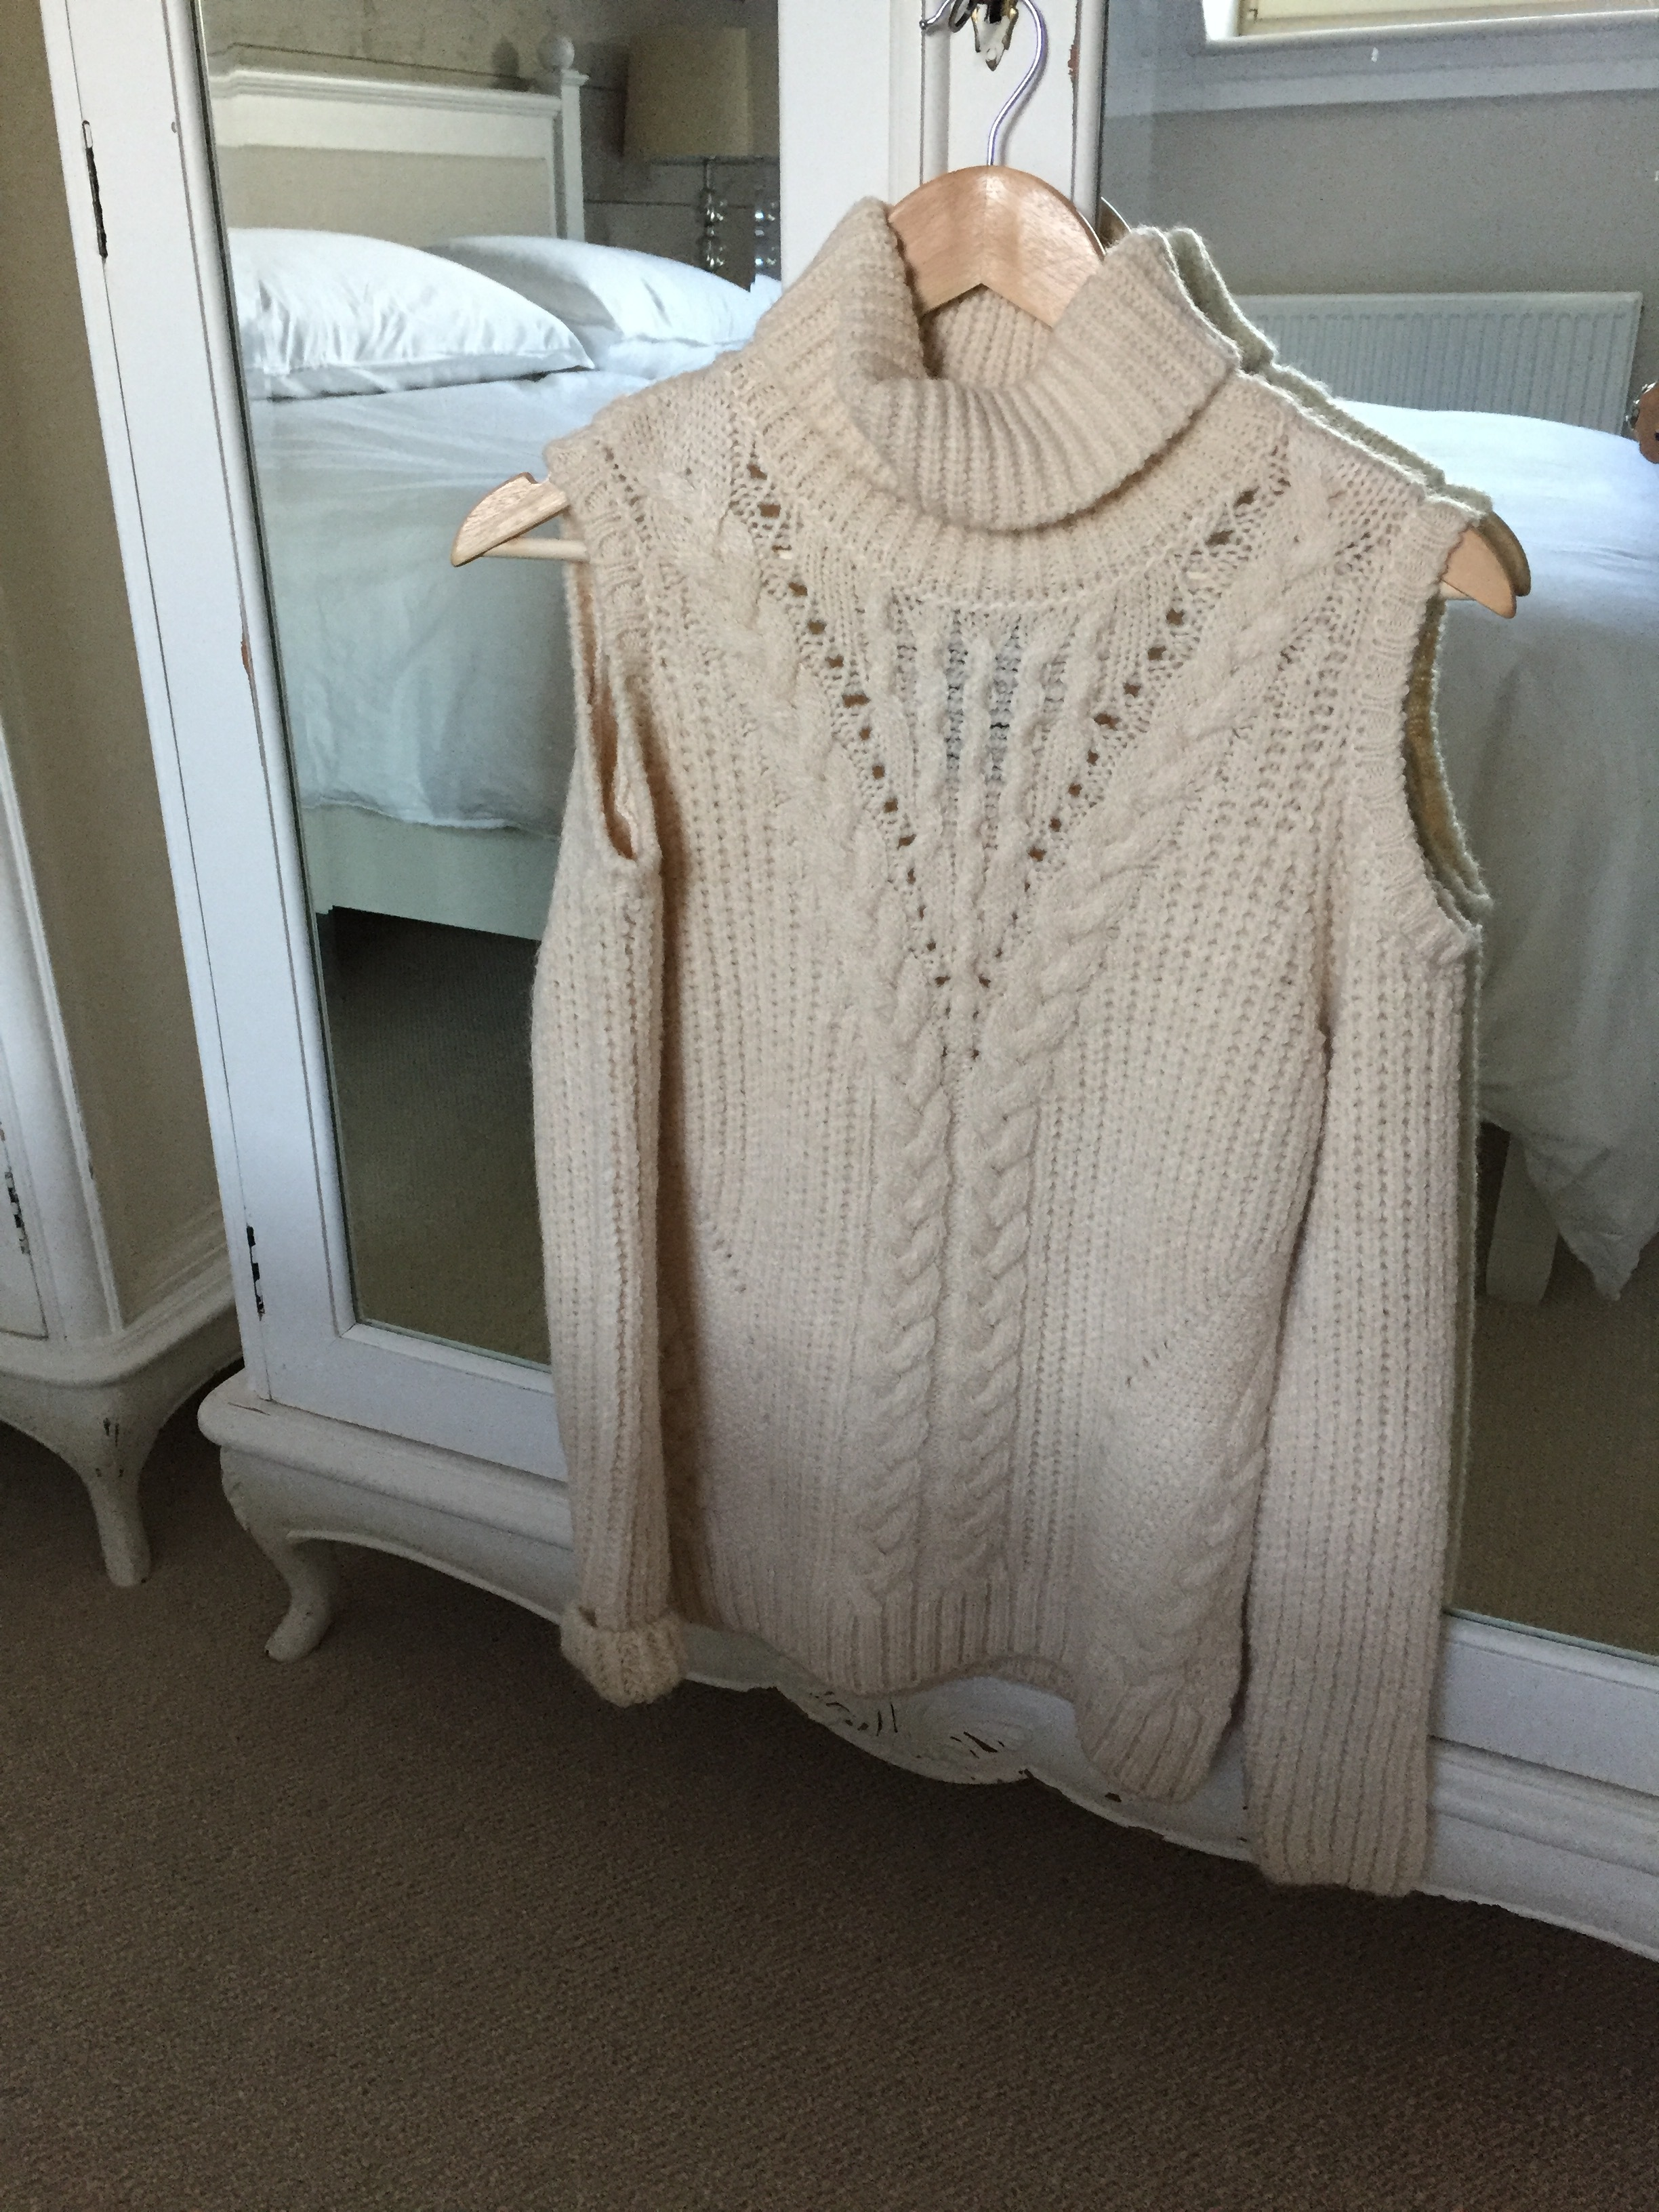 I couldn't resist this little number from M&S today at Bluewater in Kent, a reworked take on the classic cable knit, cosy with a little bit of sass! :)